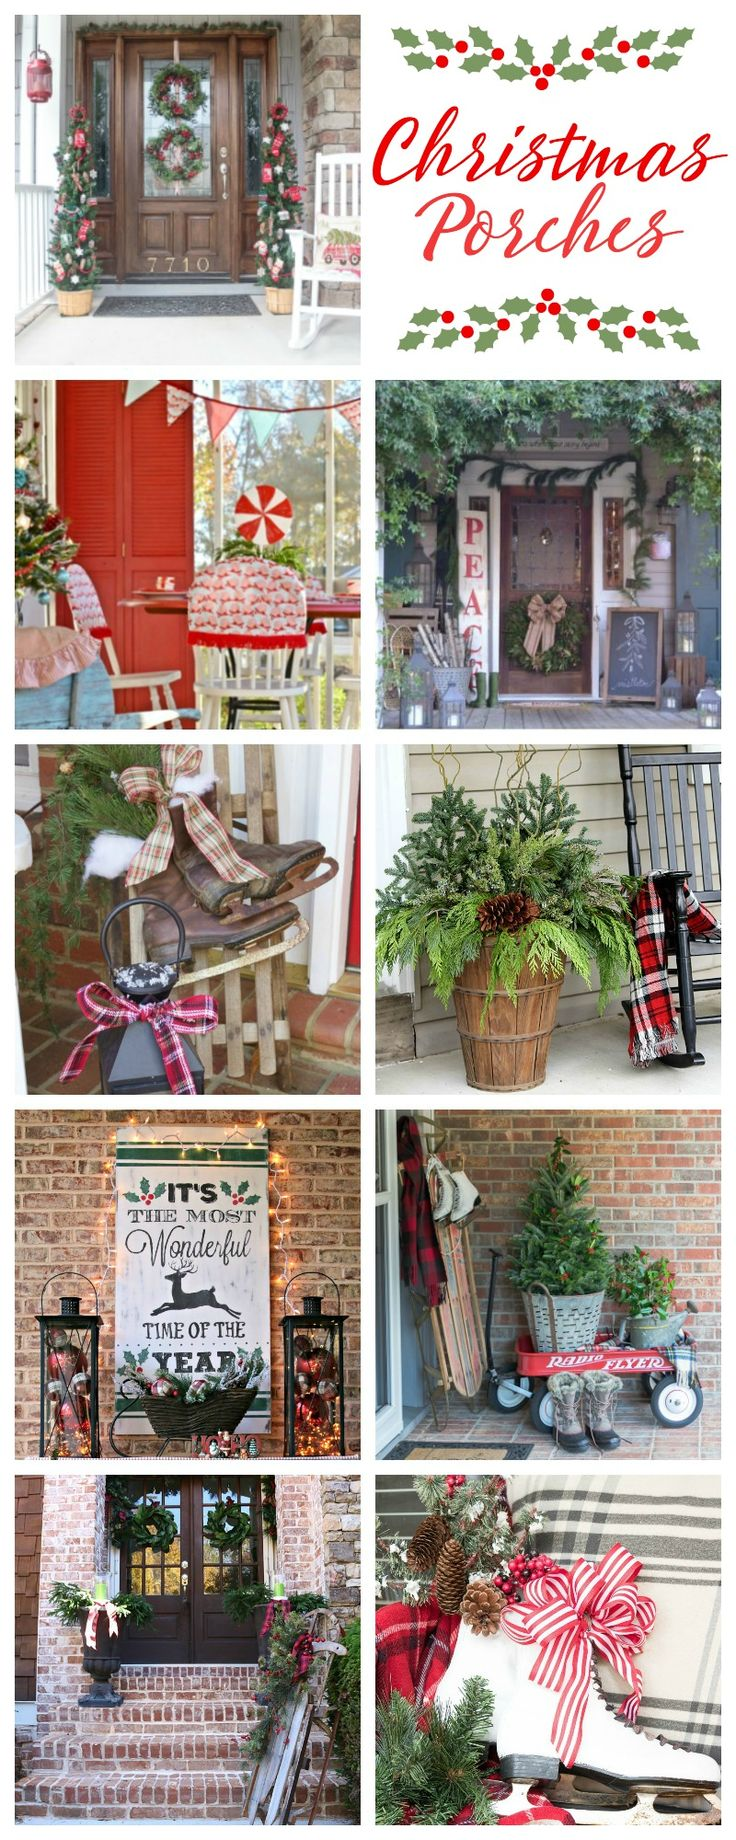 Join nine bloggers as we showcase our Christmas porches. From farmhouse to French country to vintage to lodge style, you're sure to find something to inspire you.